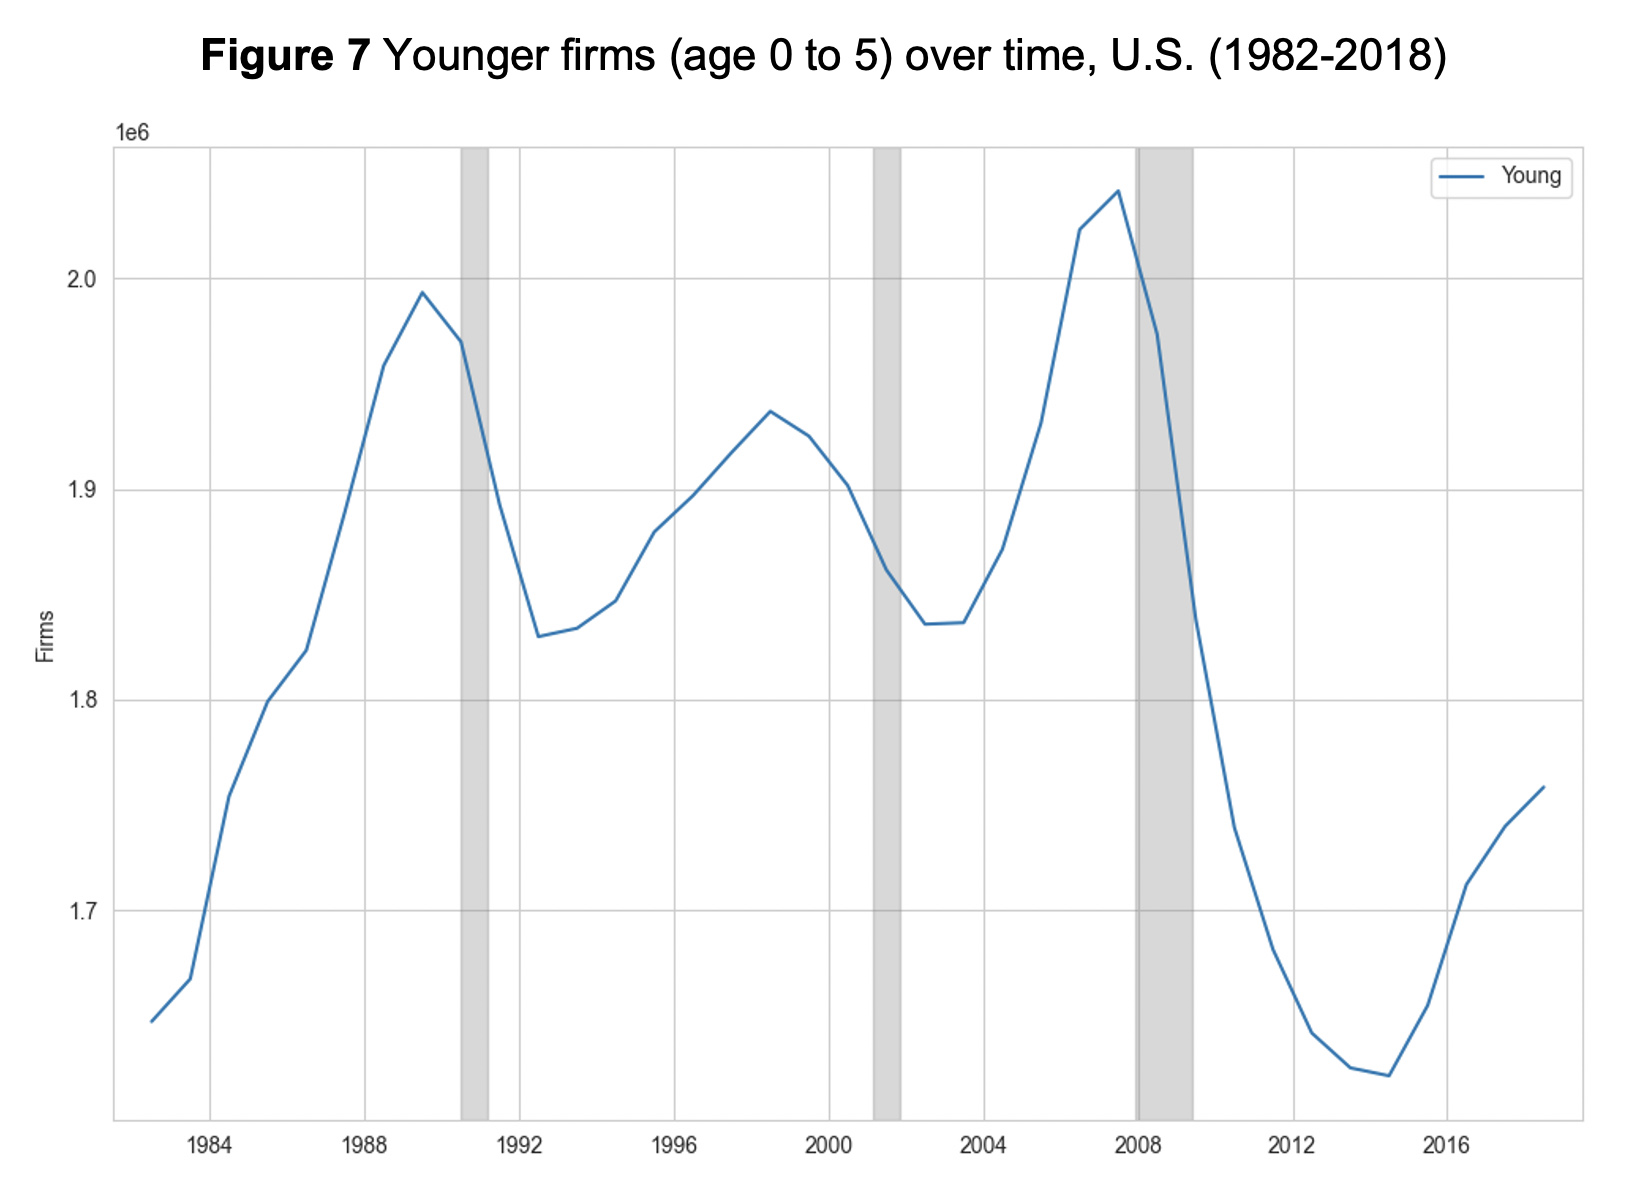 Figure 7: Younger firms (age 0 to 5) over time, U.S. (1982-2018)